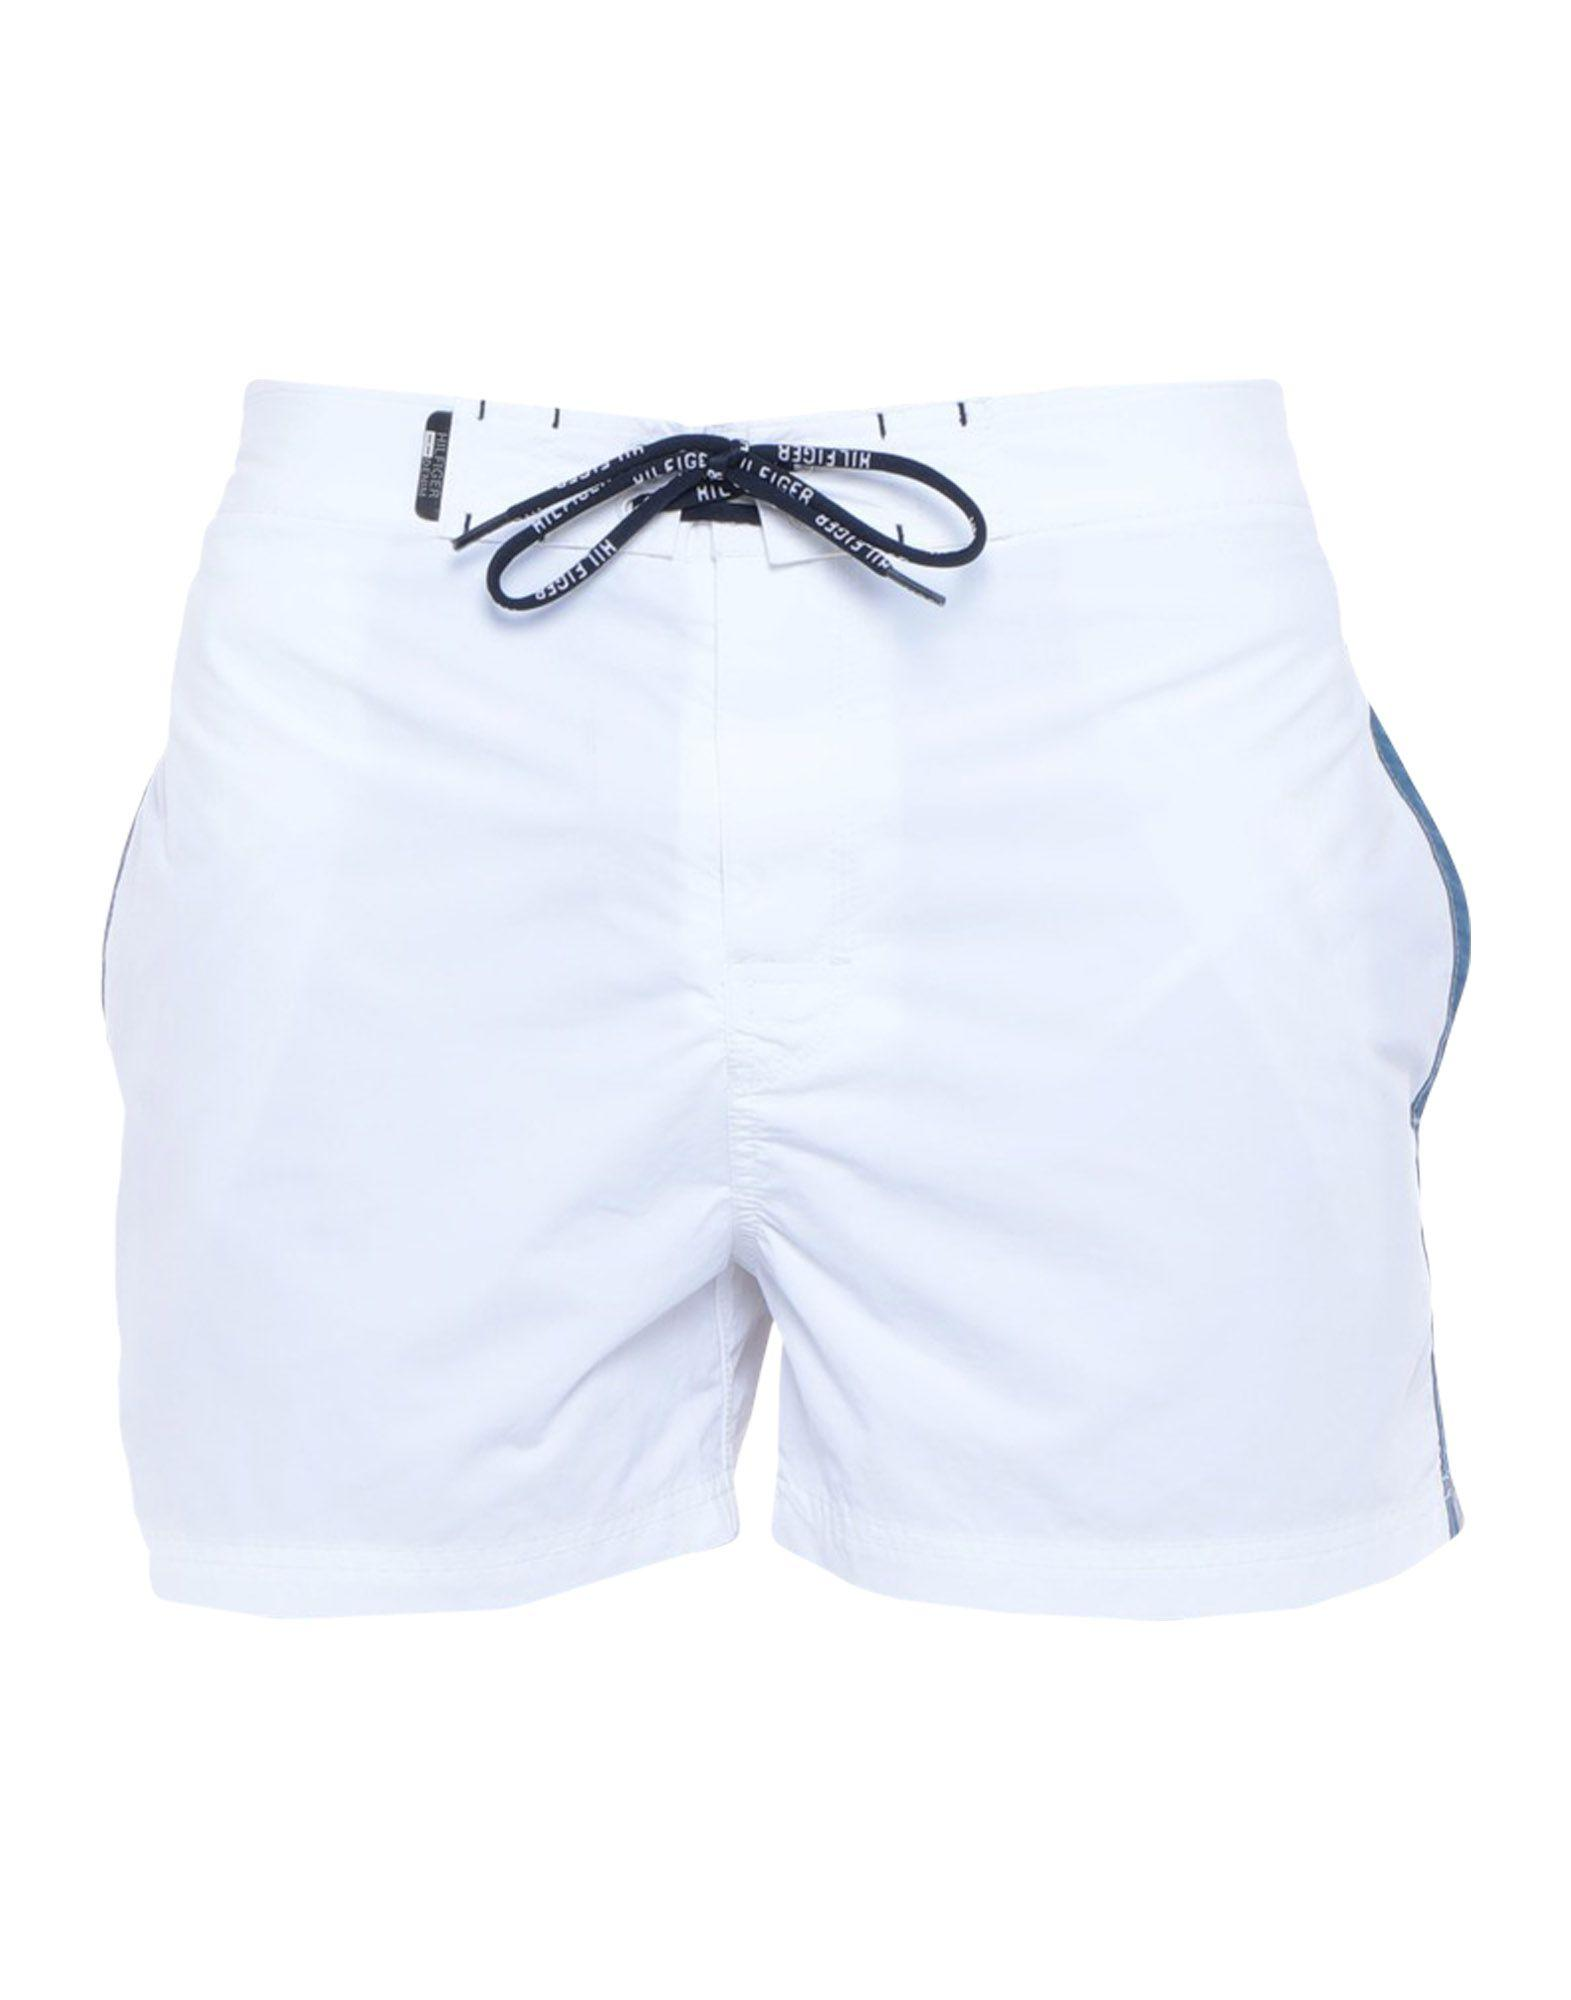 e497b295ecc698 Lyst - Tommy Hilfiger Swimming Trunks in White for Men